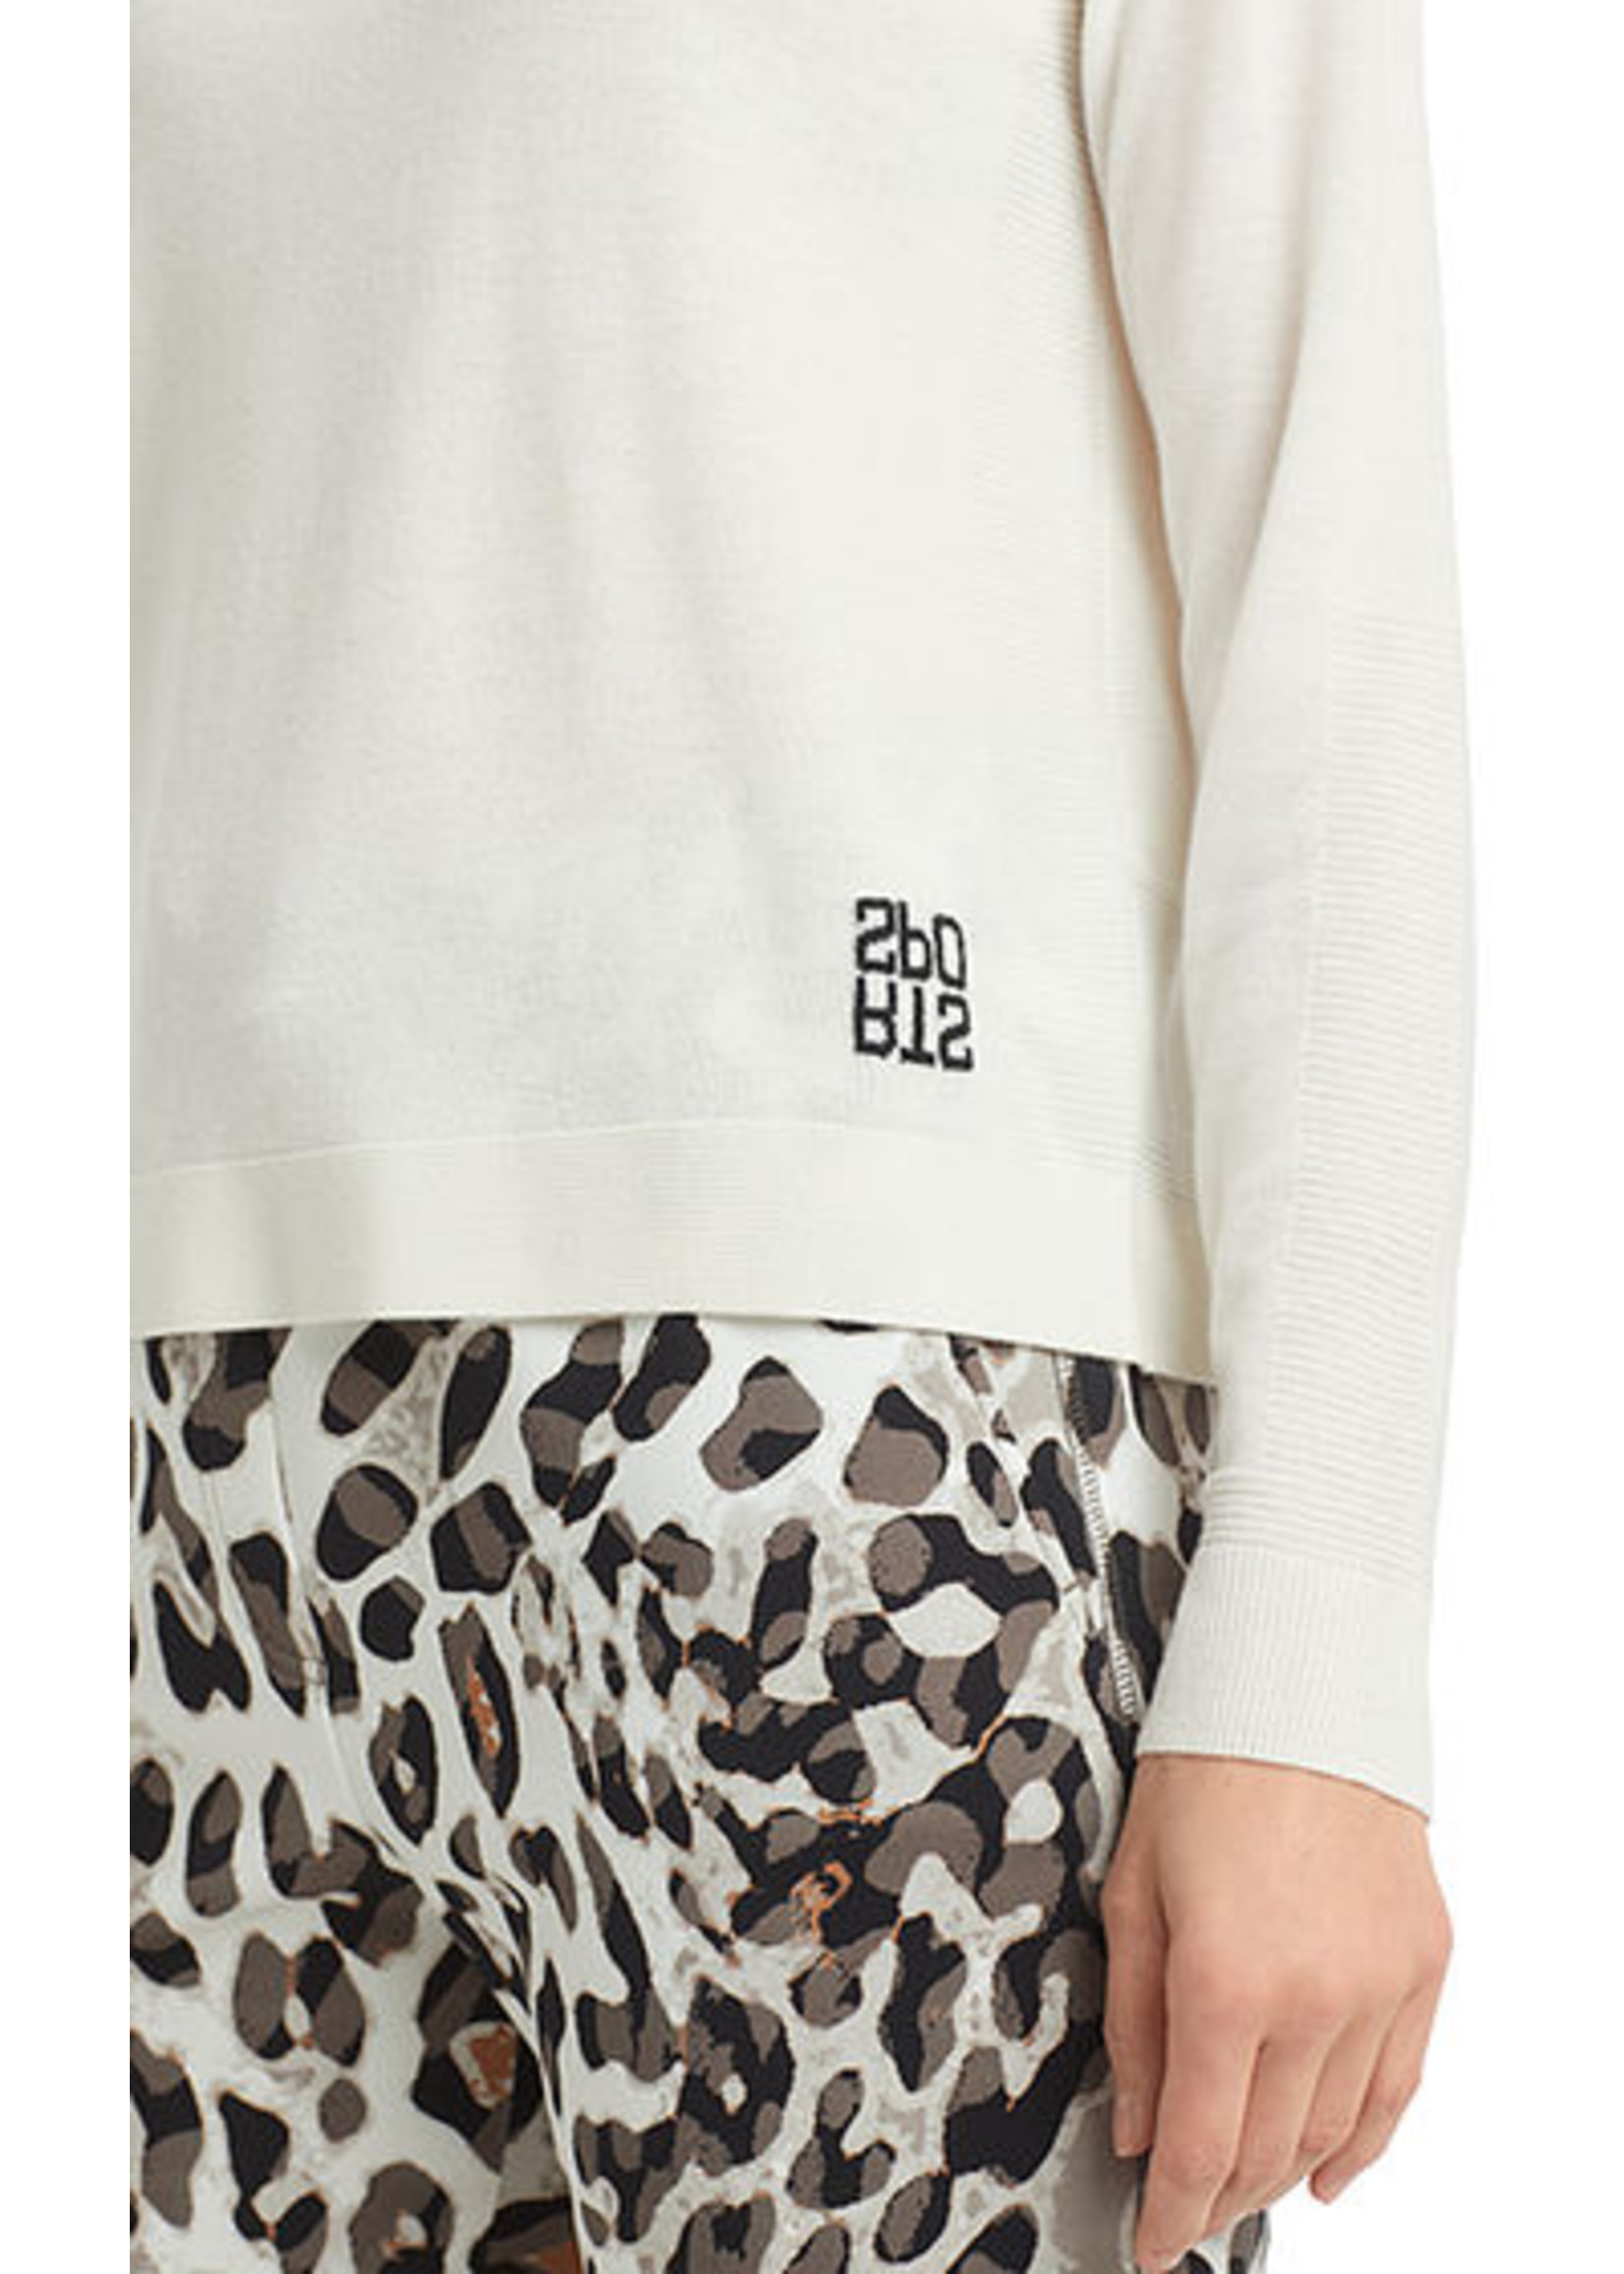 Marccain Sports Sweater RS 41.37 M80 off-white